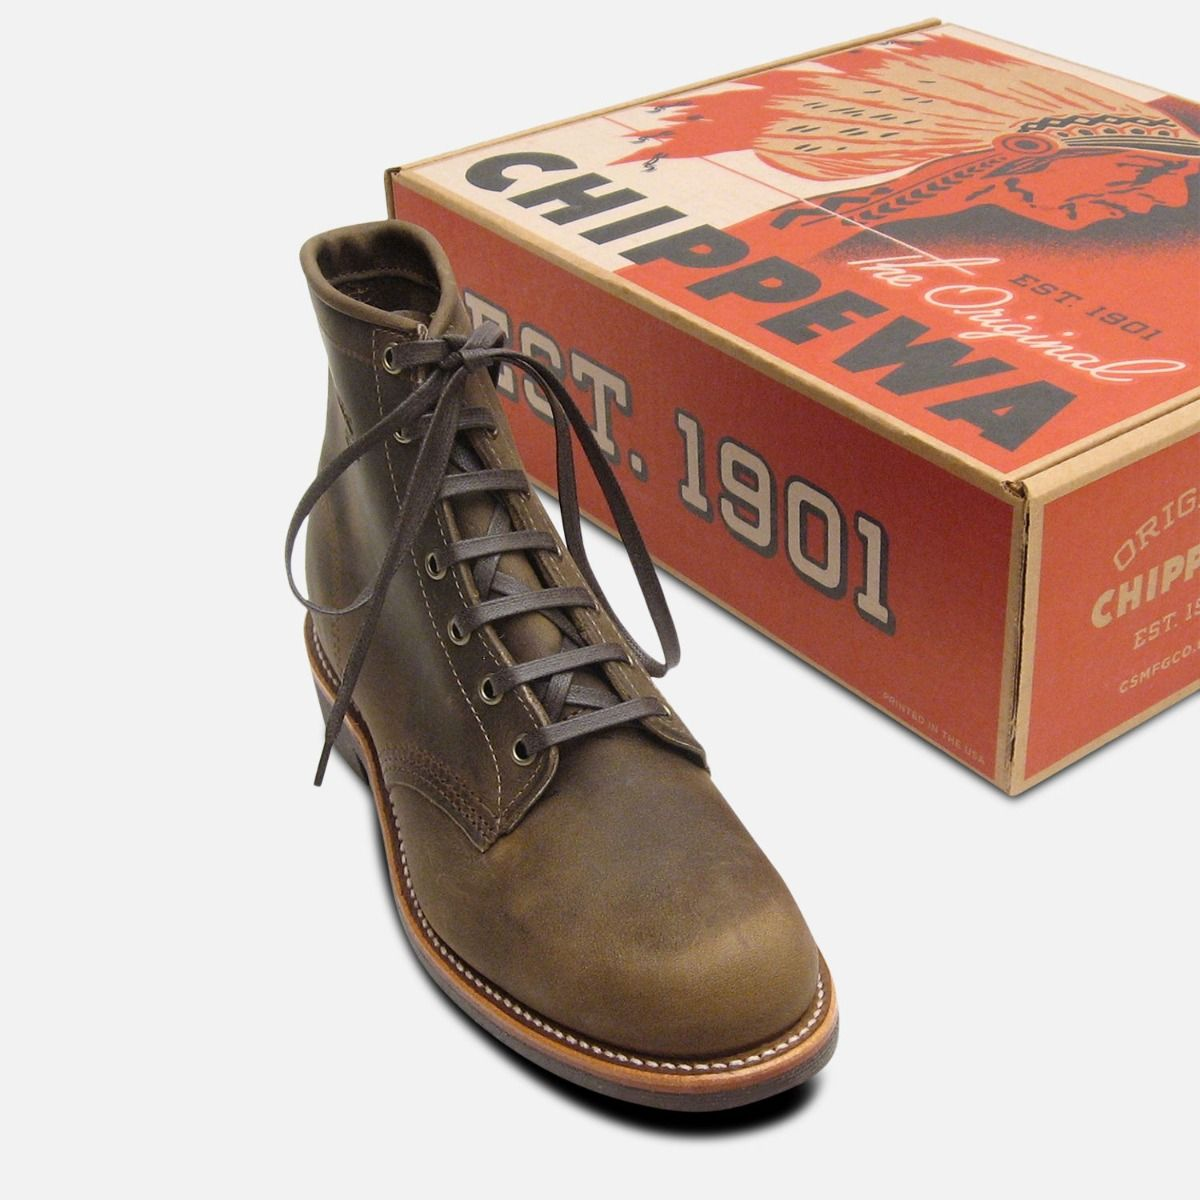 Crazyhorse Leather 1901M29 Chippewa Lace Up Boots with Vibram Sole